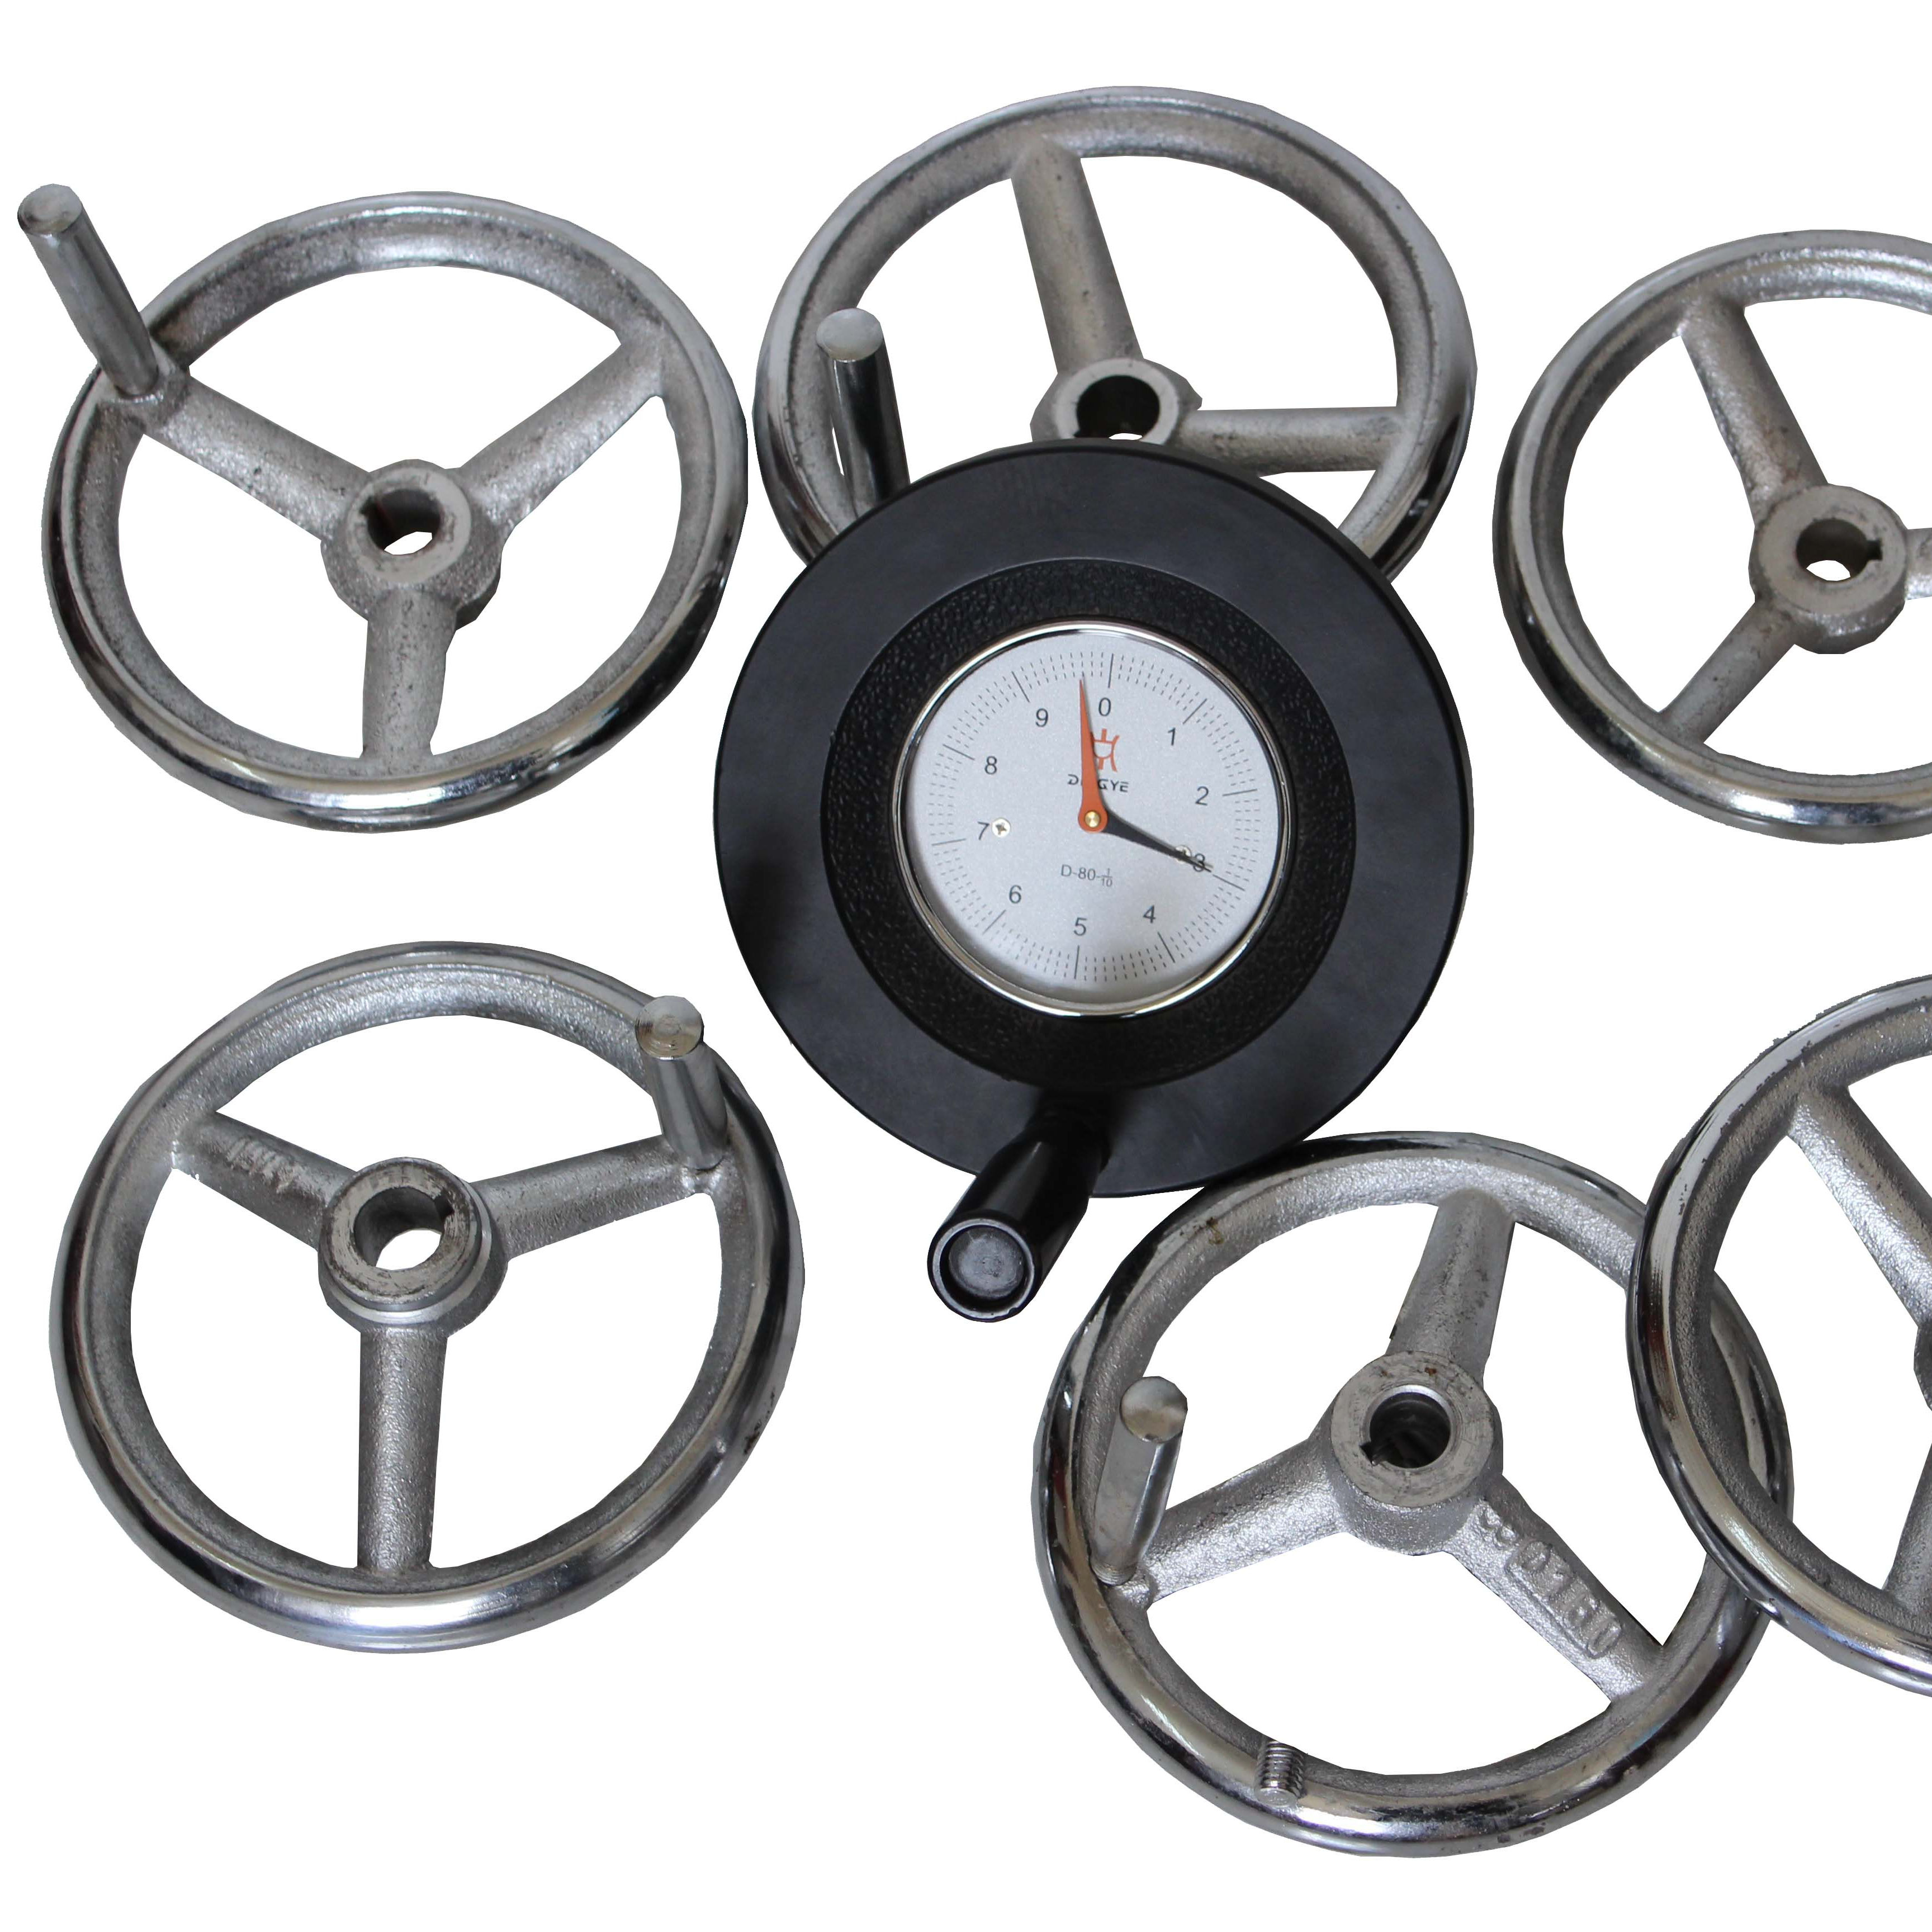 Die casting machine accessories double digital handwheel 16*160 1/12E Lijin adjustment handwheel